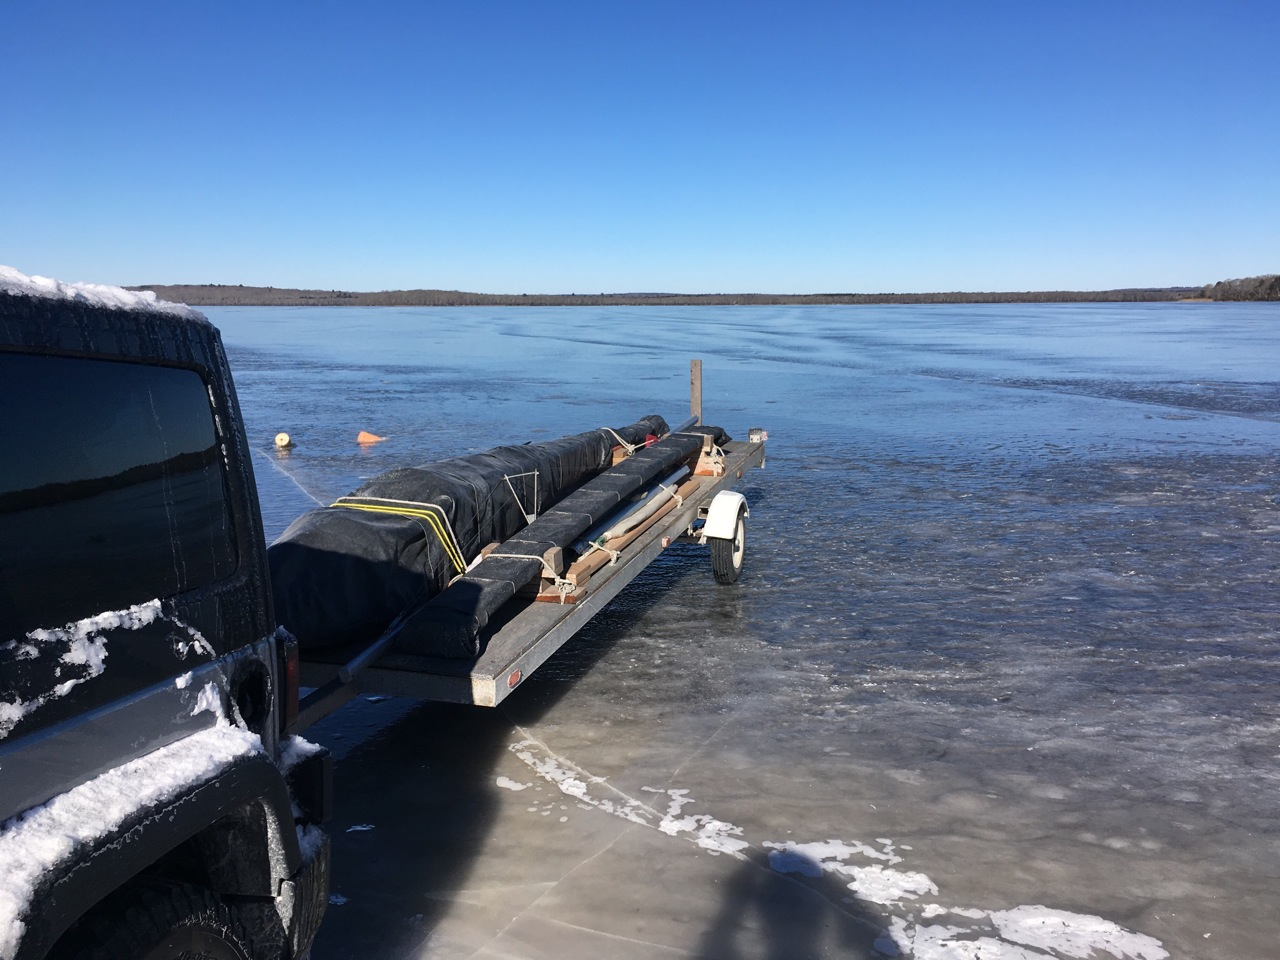 Chickawaukie Ice Boat Club | Maine ice boat enthusiasts and